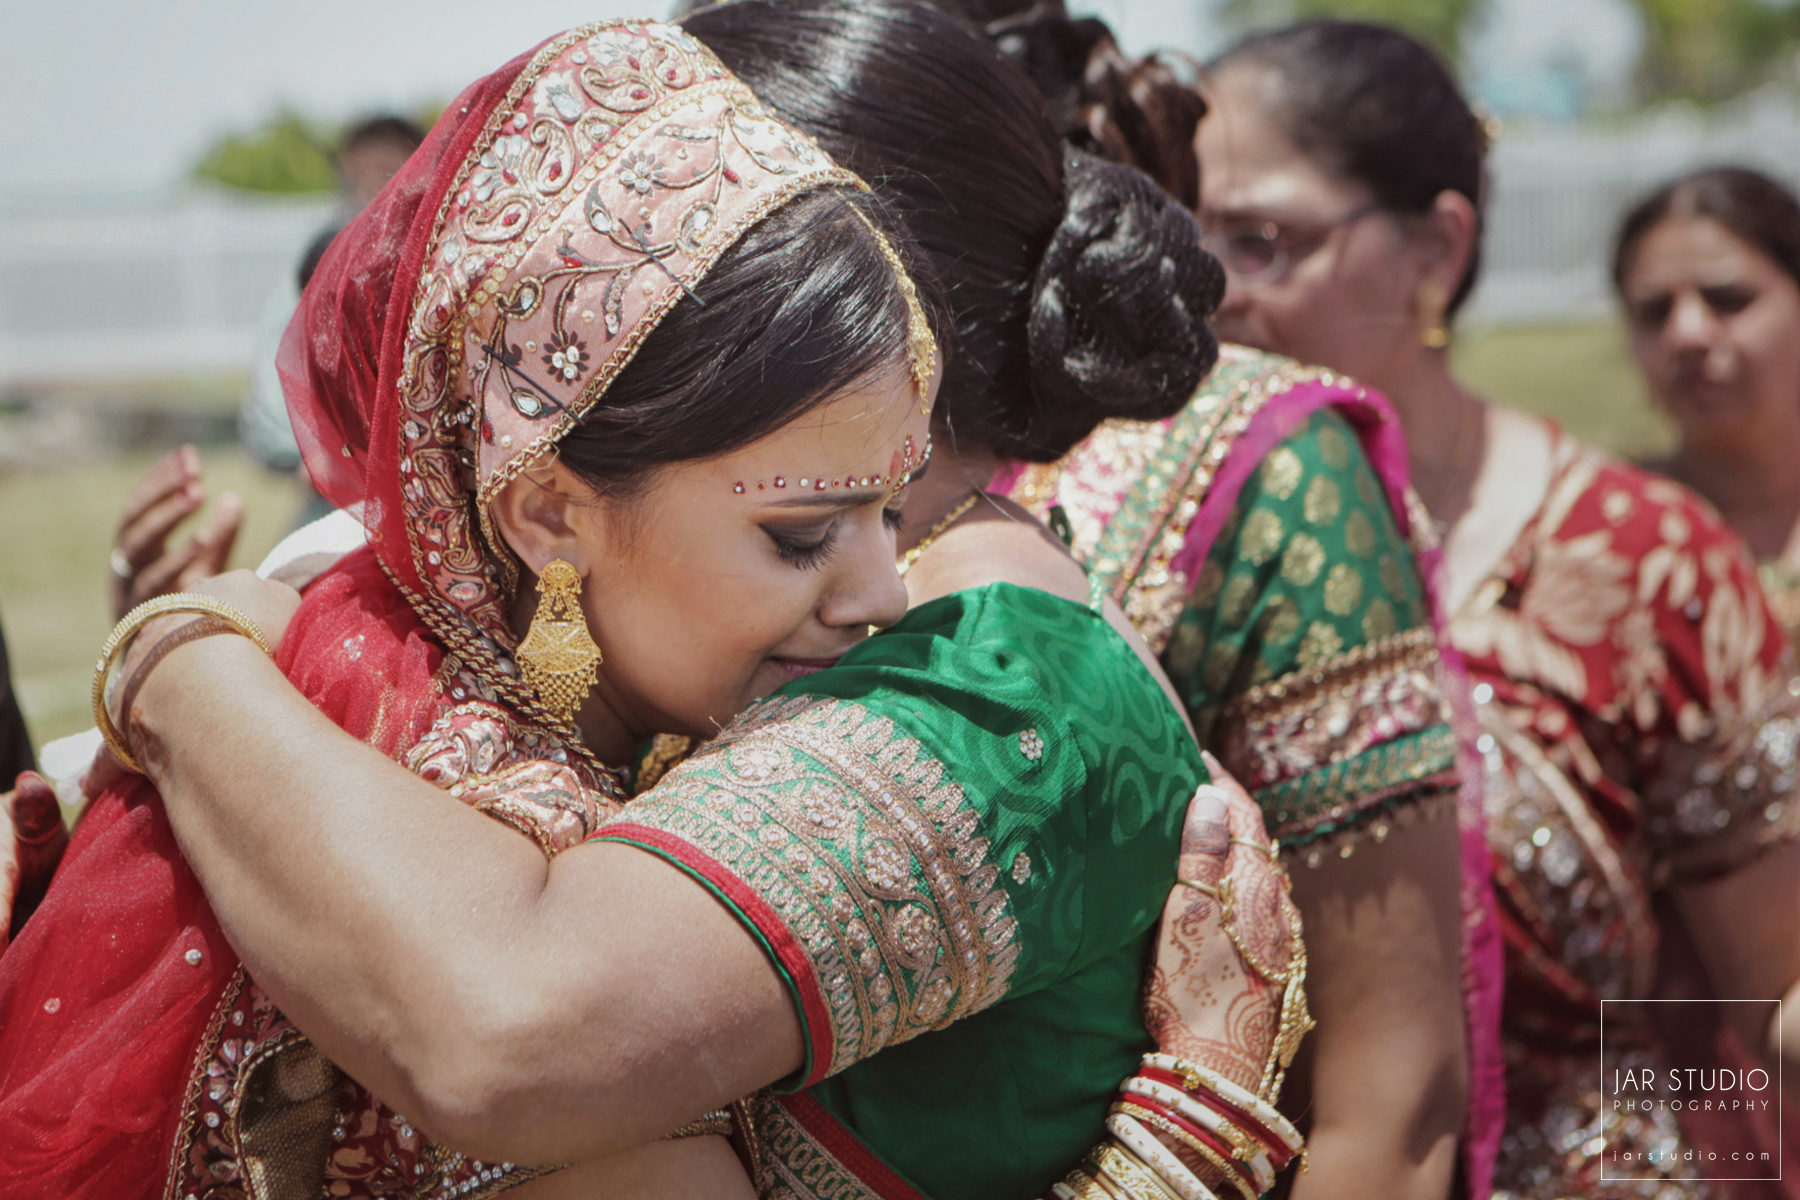 44-indian-bride-mom-wedding-jarstudio-photography-florida.JPG